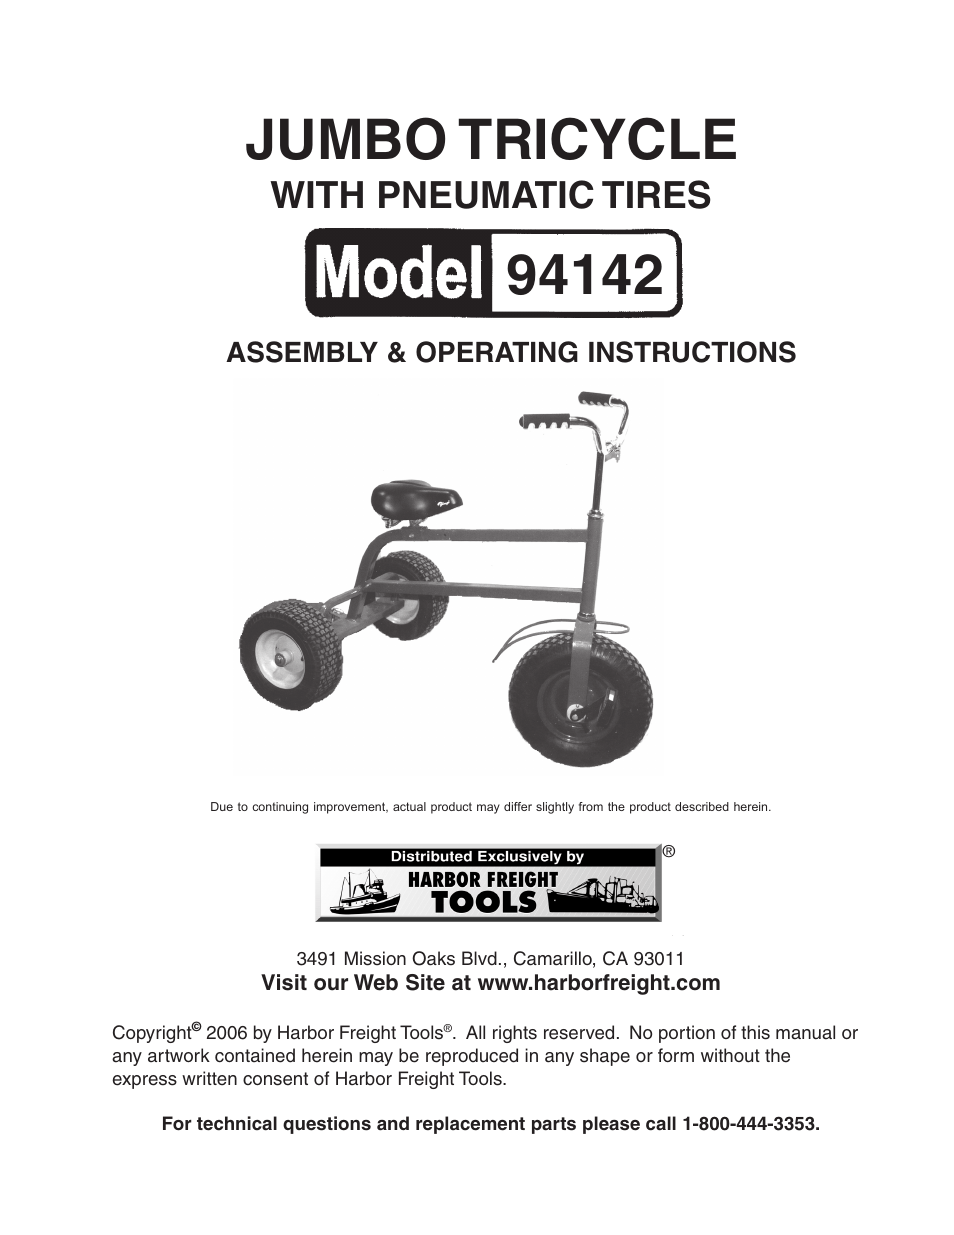 Harbor Freight Tricycle